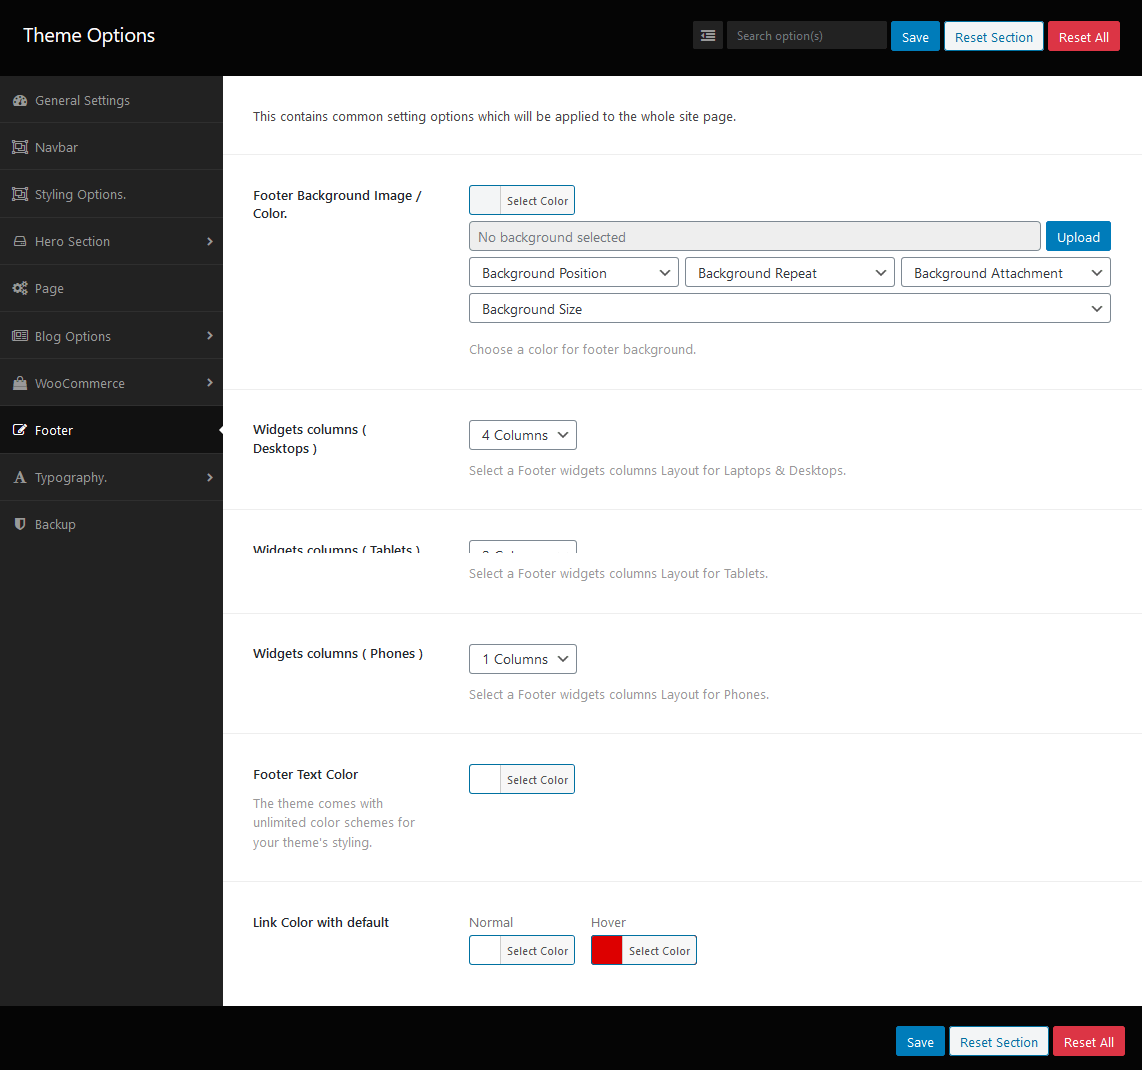 Dashboard of Footer Options